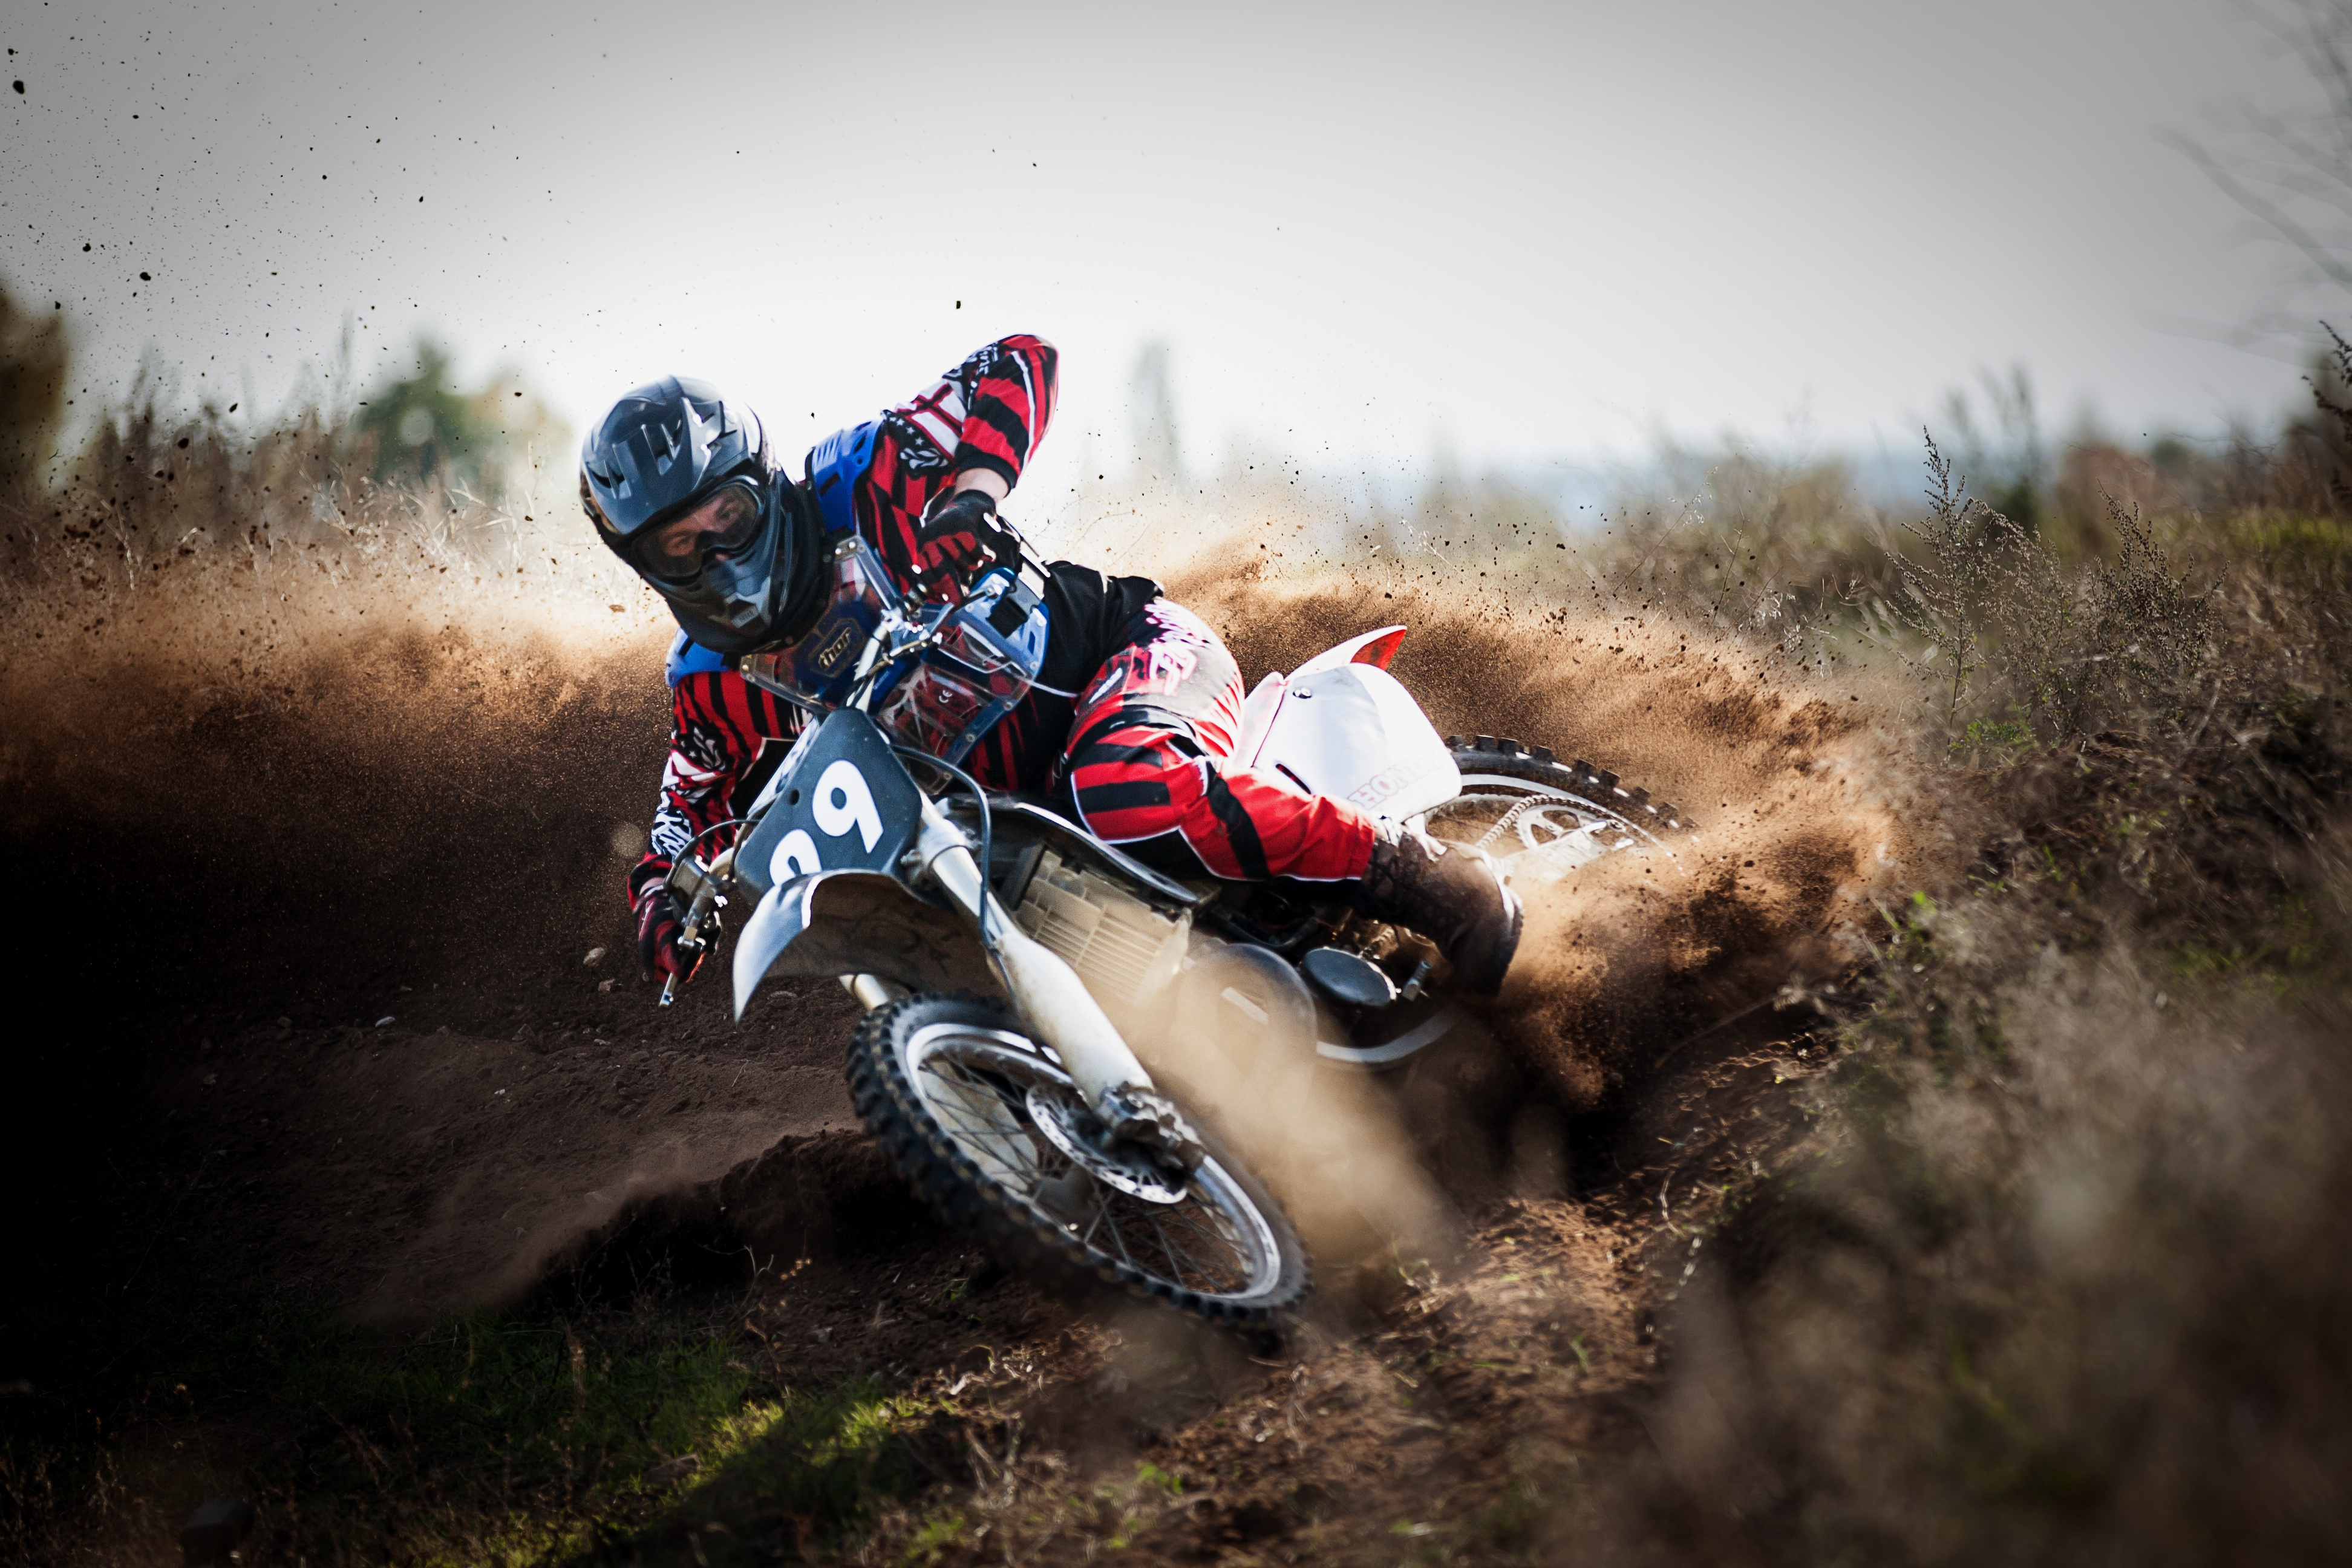 Dirt Bikes Hd Wallpapers: Motocross Wallpapers, Pictures, Images